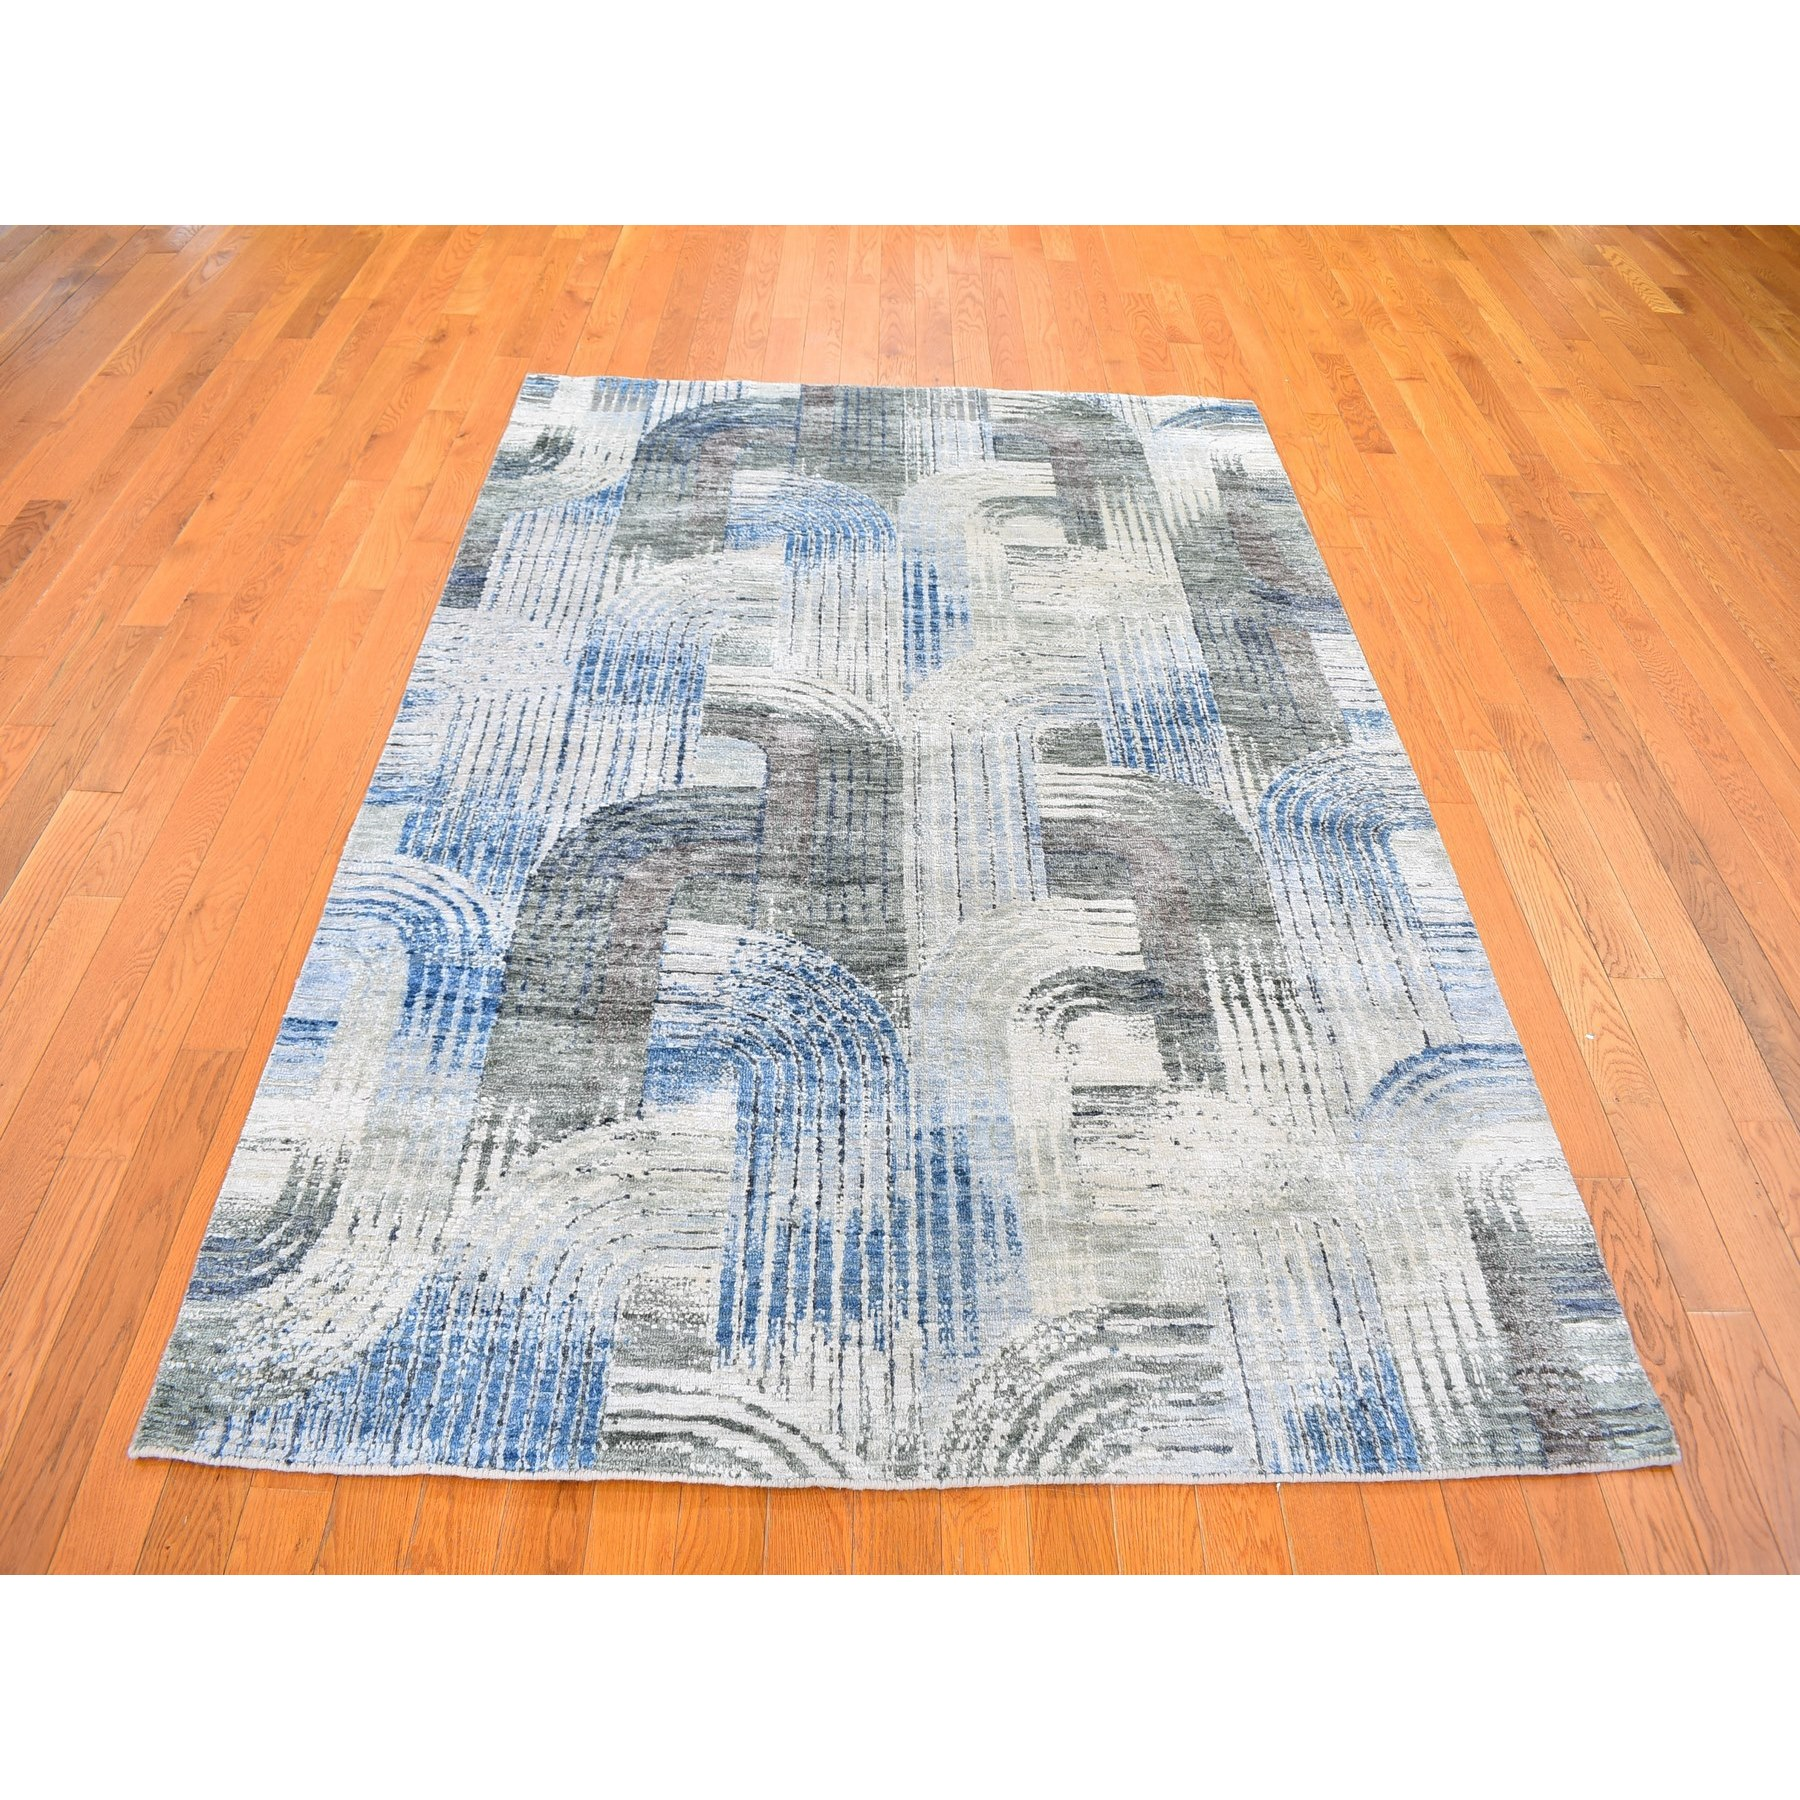 "5'1""x7' THE INTERTWINED PASSAGE, Silk with Textured Wool Hand Woven Oriental Rug"